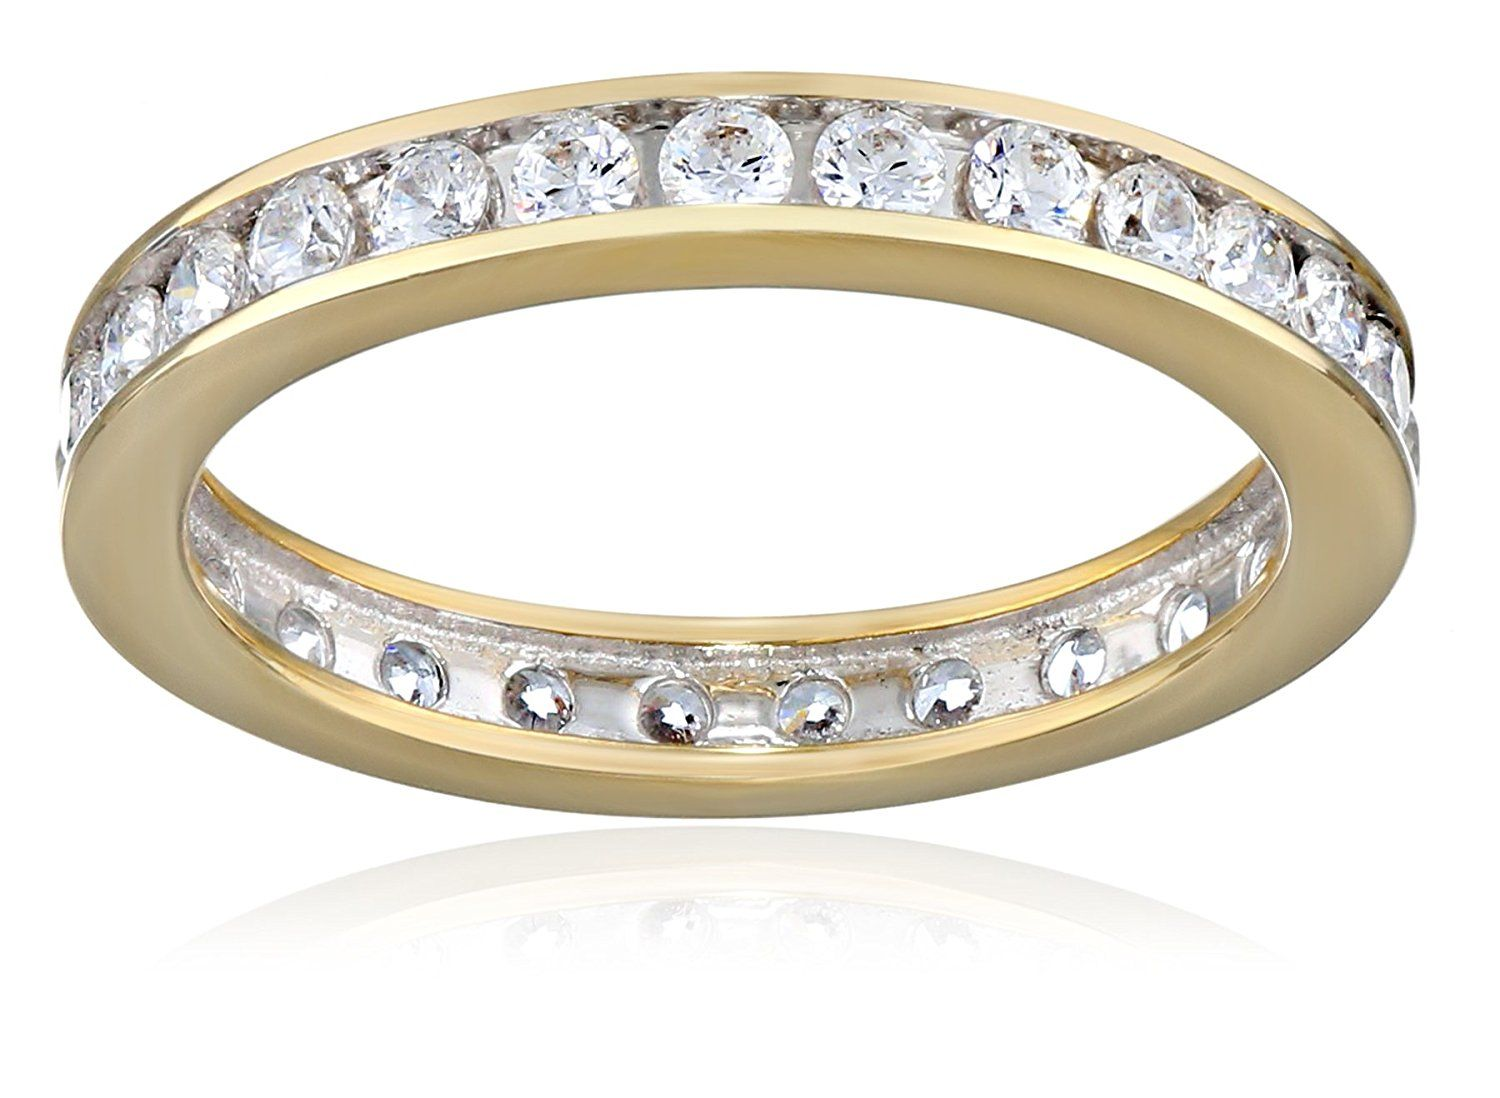 I1 clarity, G-I color Jewelry Adviser Rings 14k White Gold 5x3mm Oval Pink Sapphire AA Diamond ring Diamond quality AA